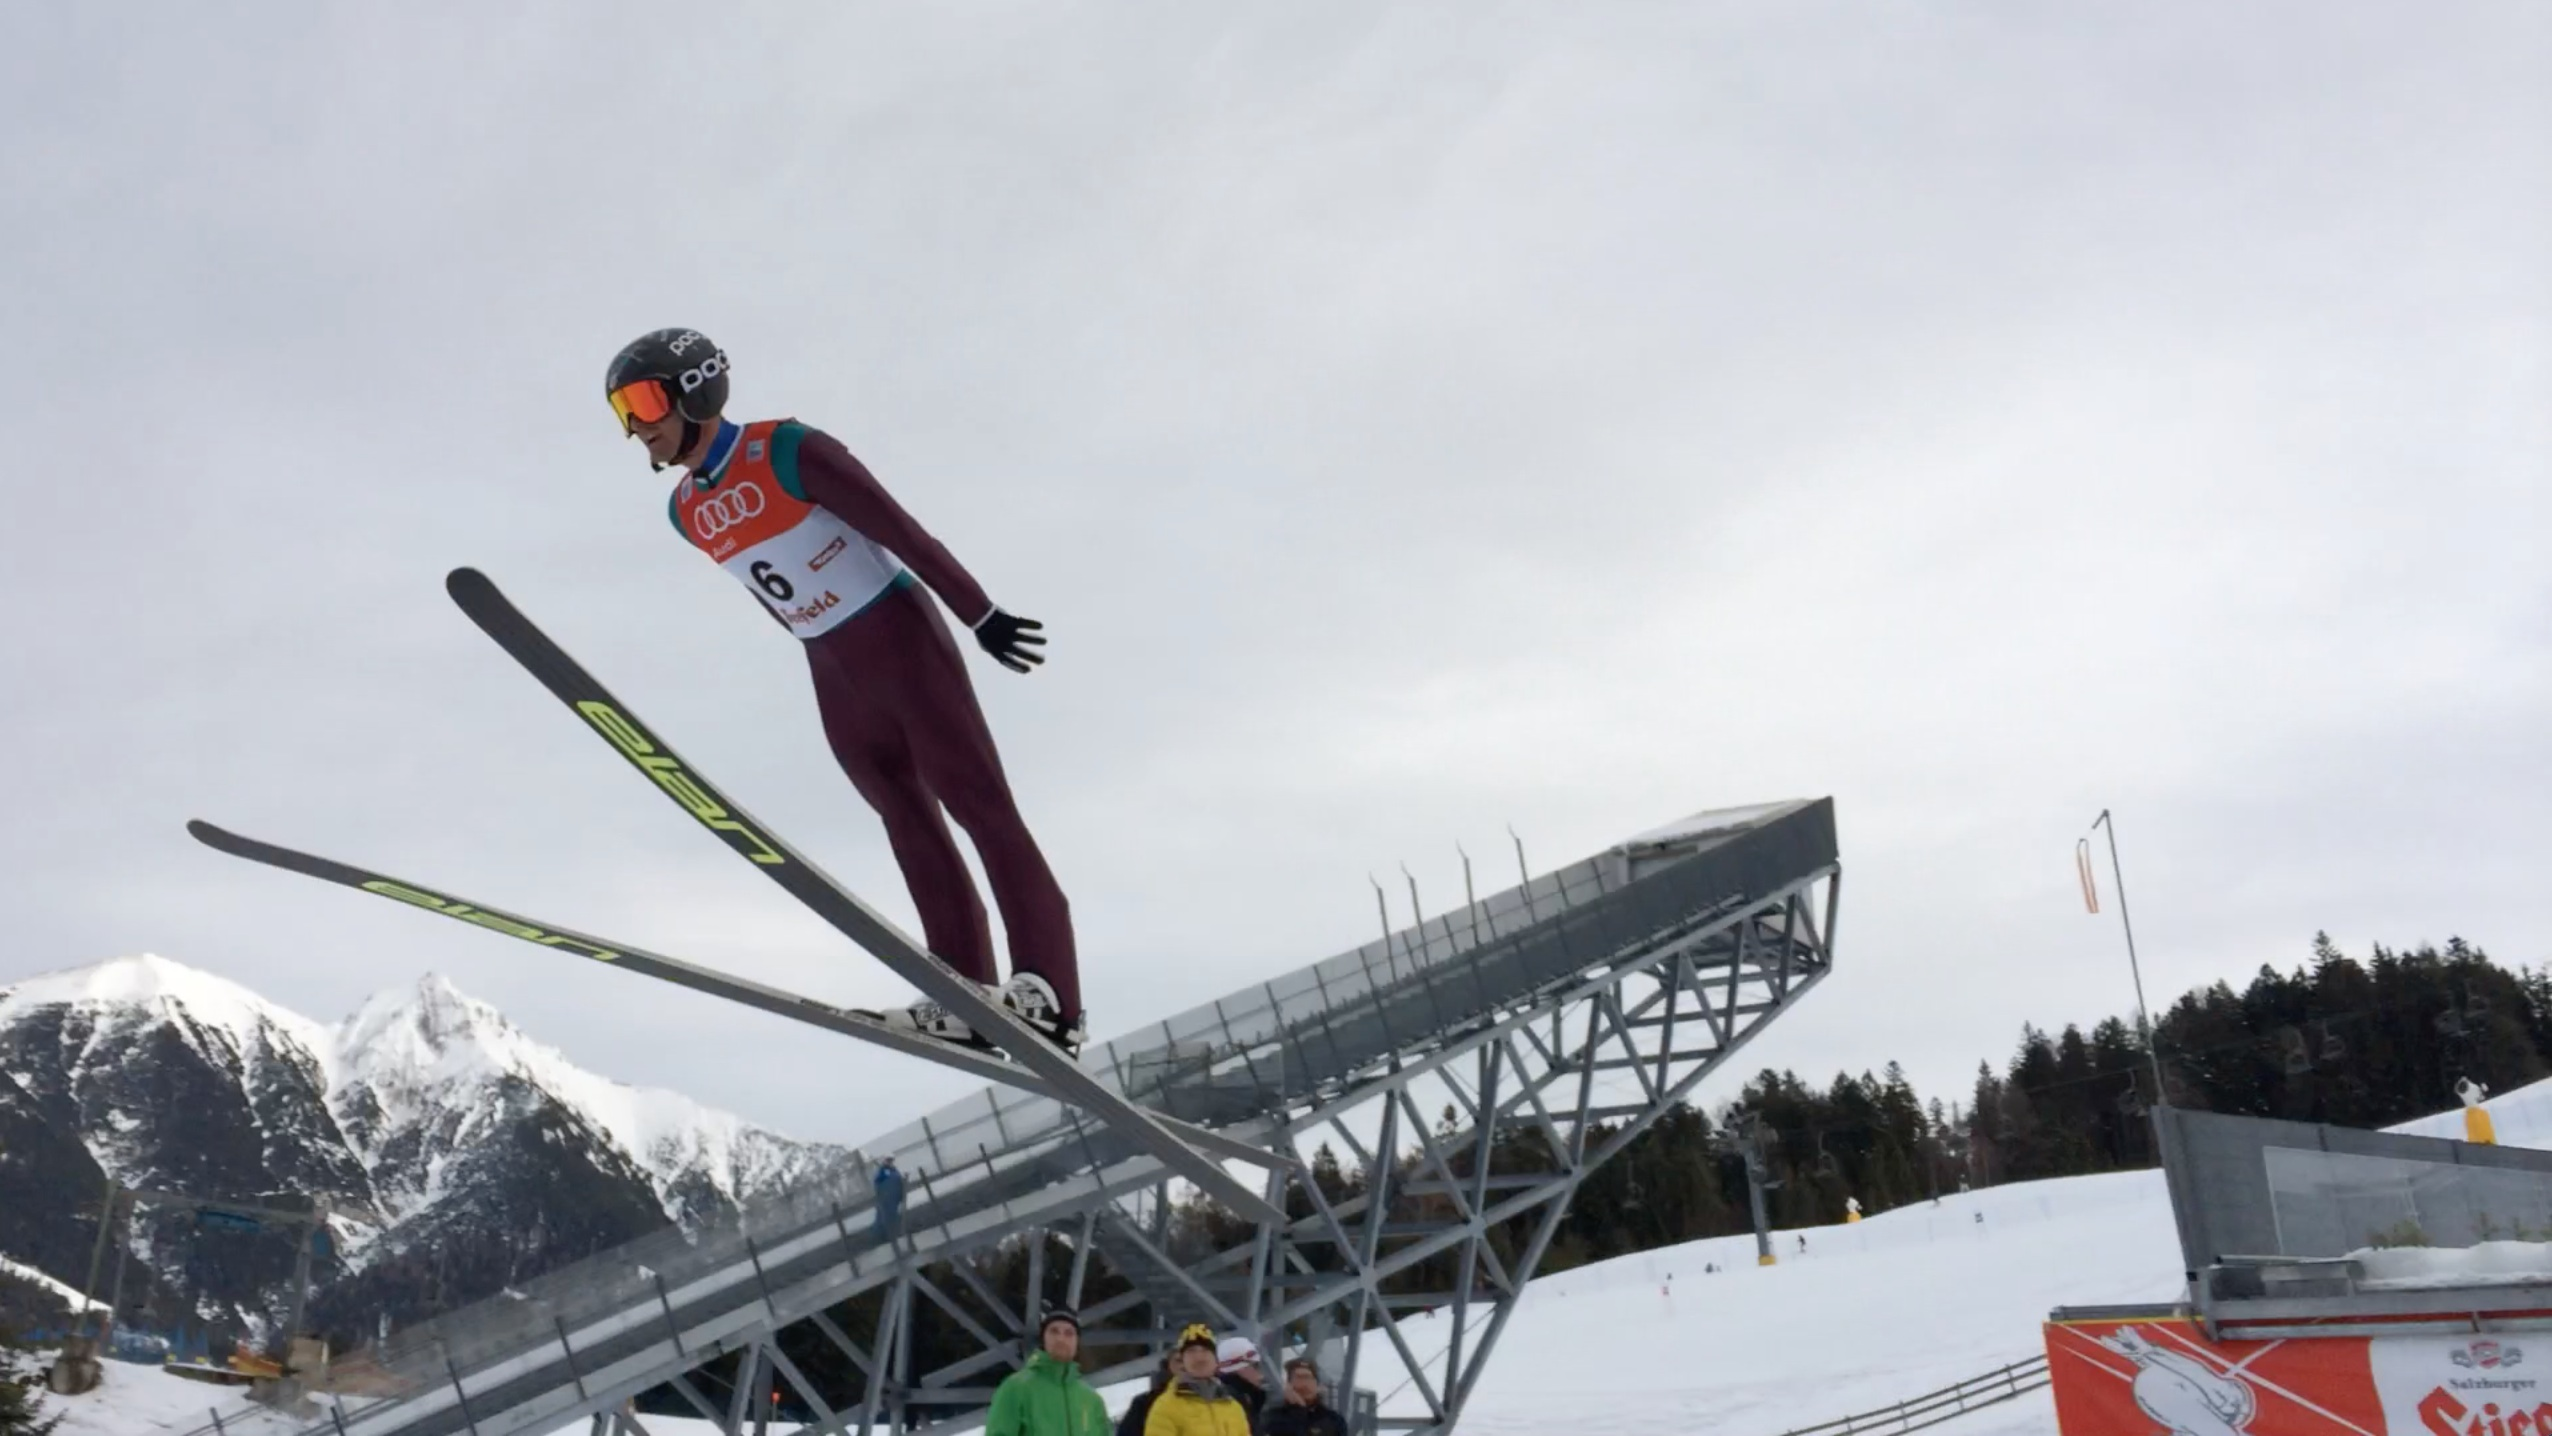 https://fasterskier.com/wp-content/blogs.dir/1/files/2014/01/seefeld-noco-day-2.jpg